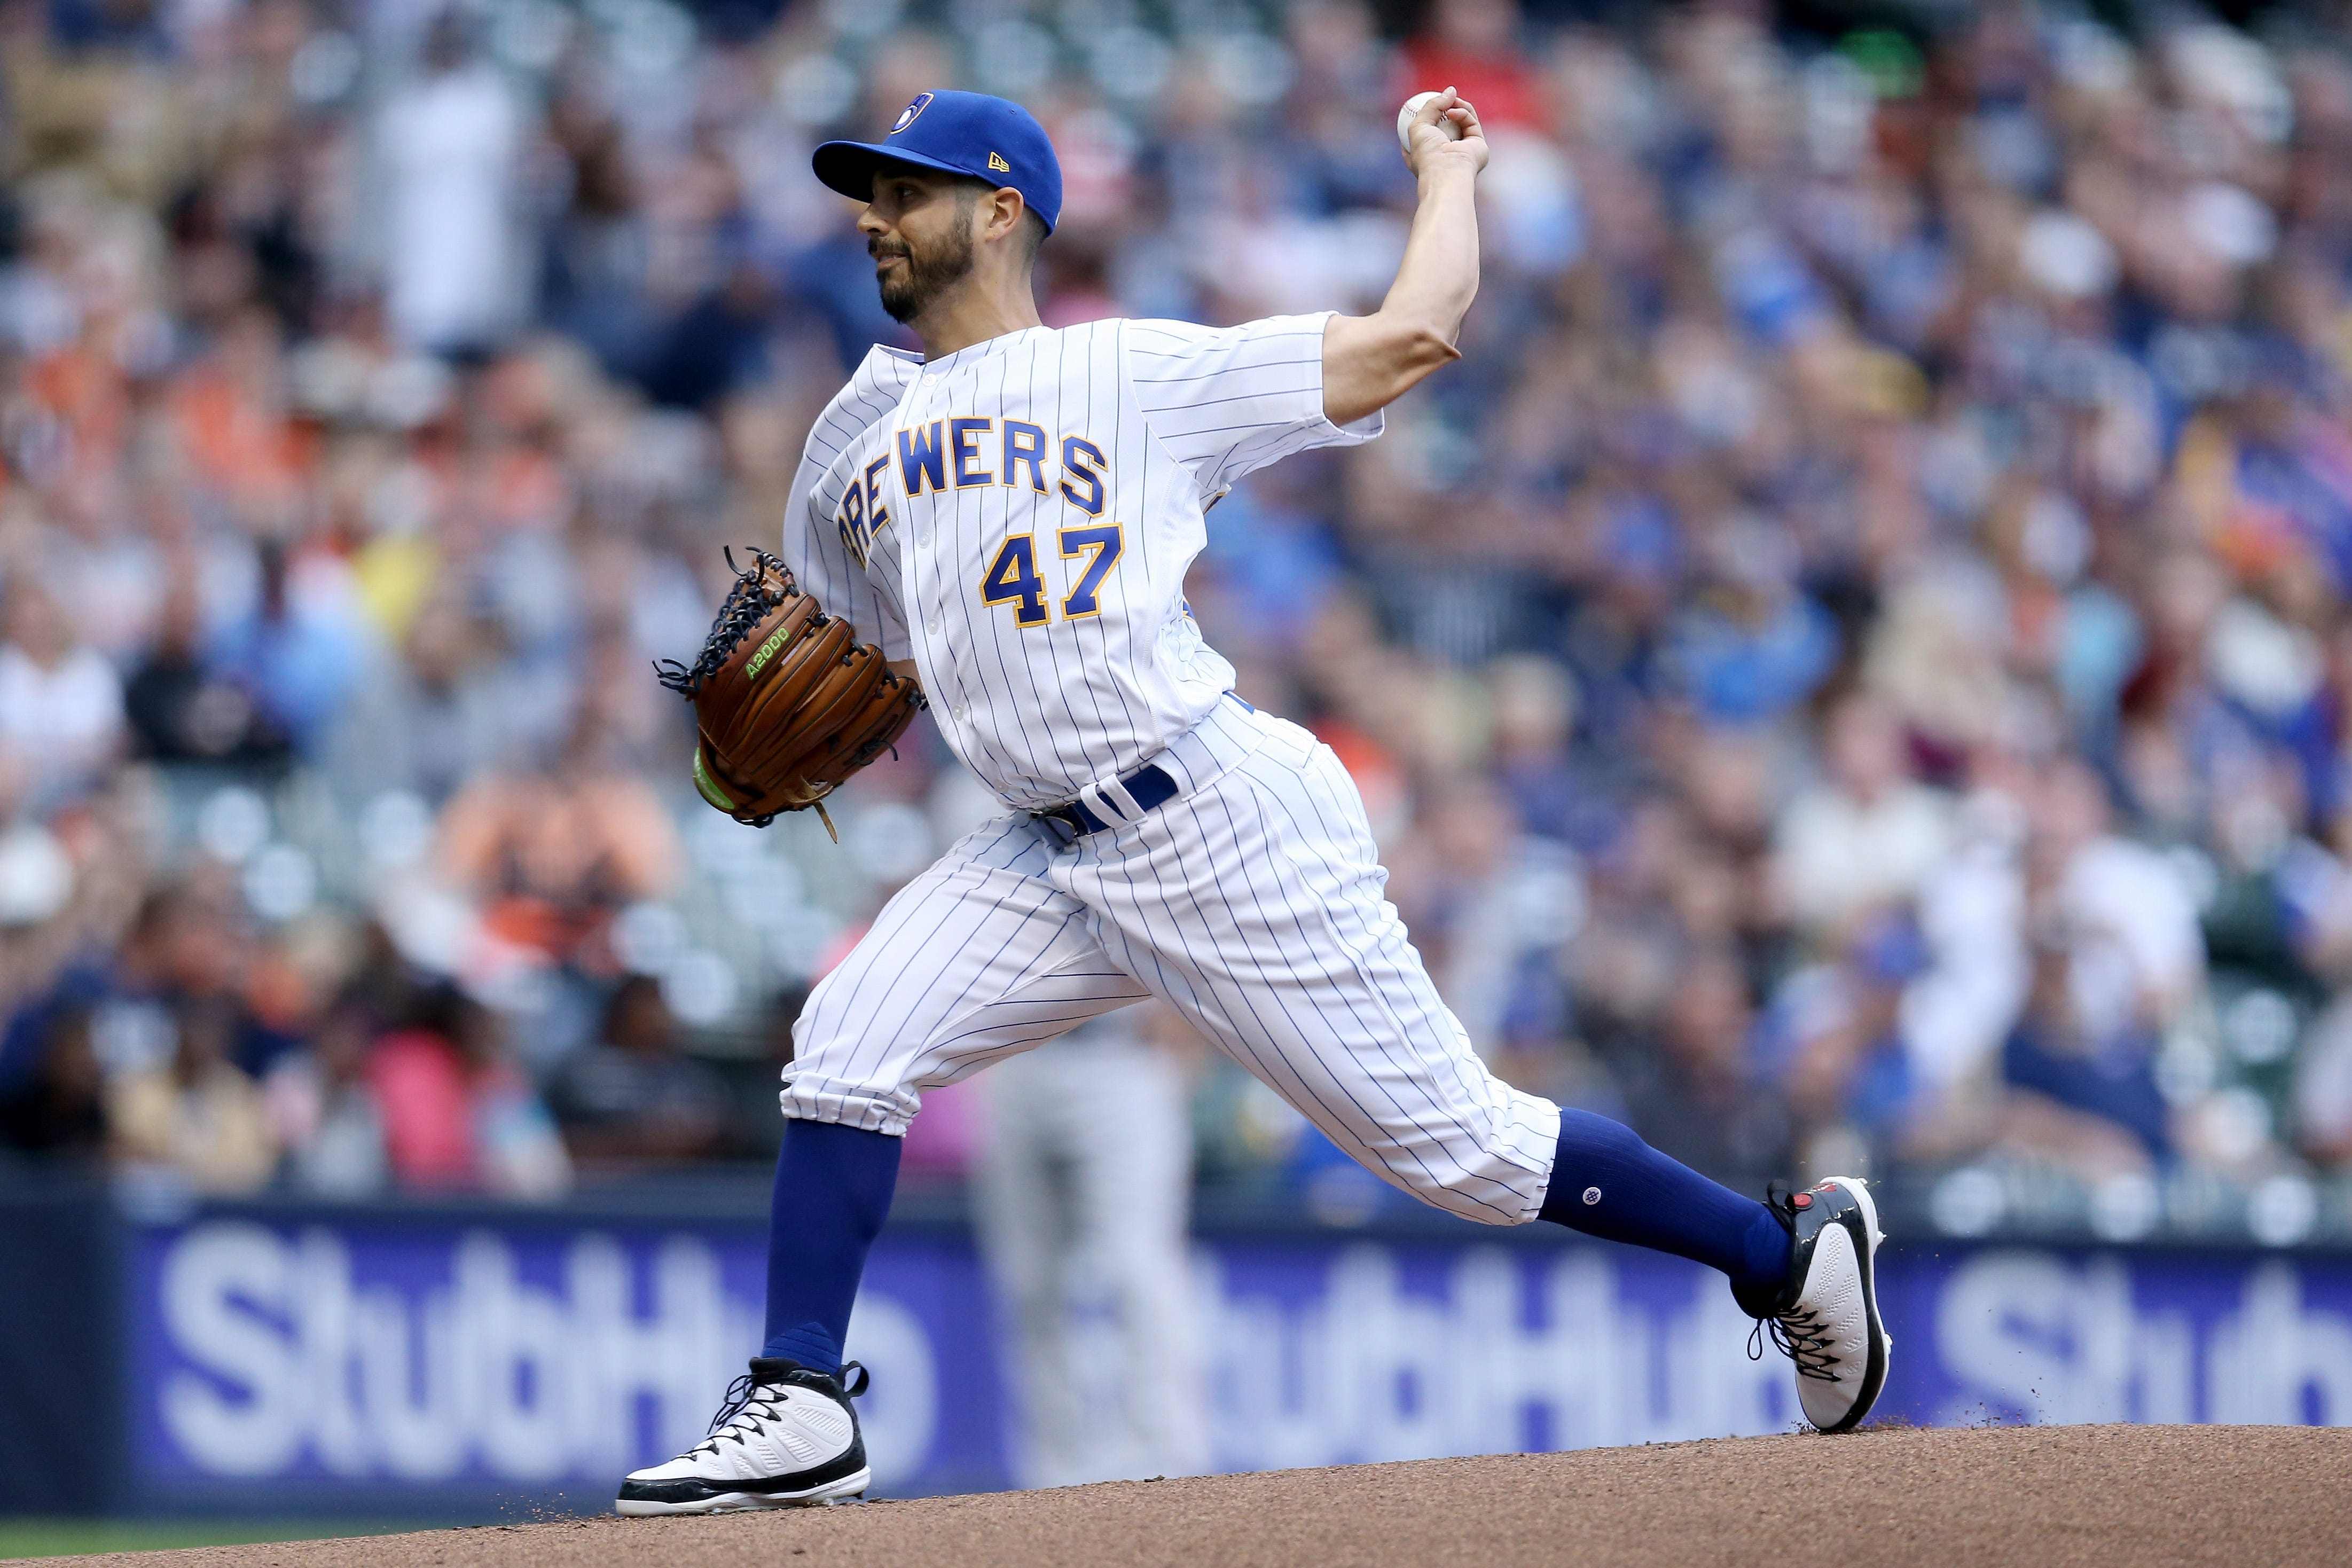 The Brewers traded for starter Gio Gonzalez on Aug. 31.